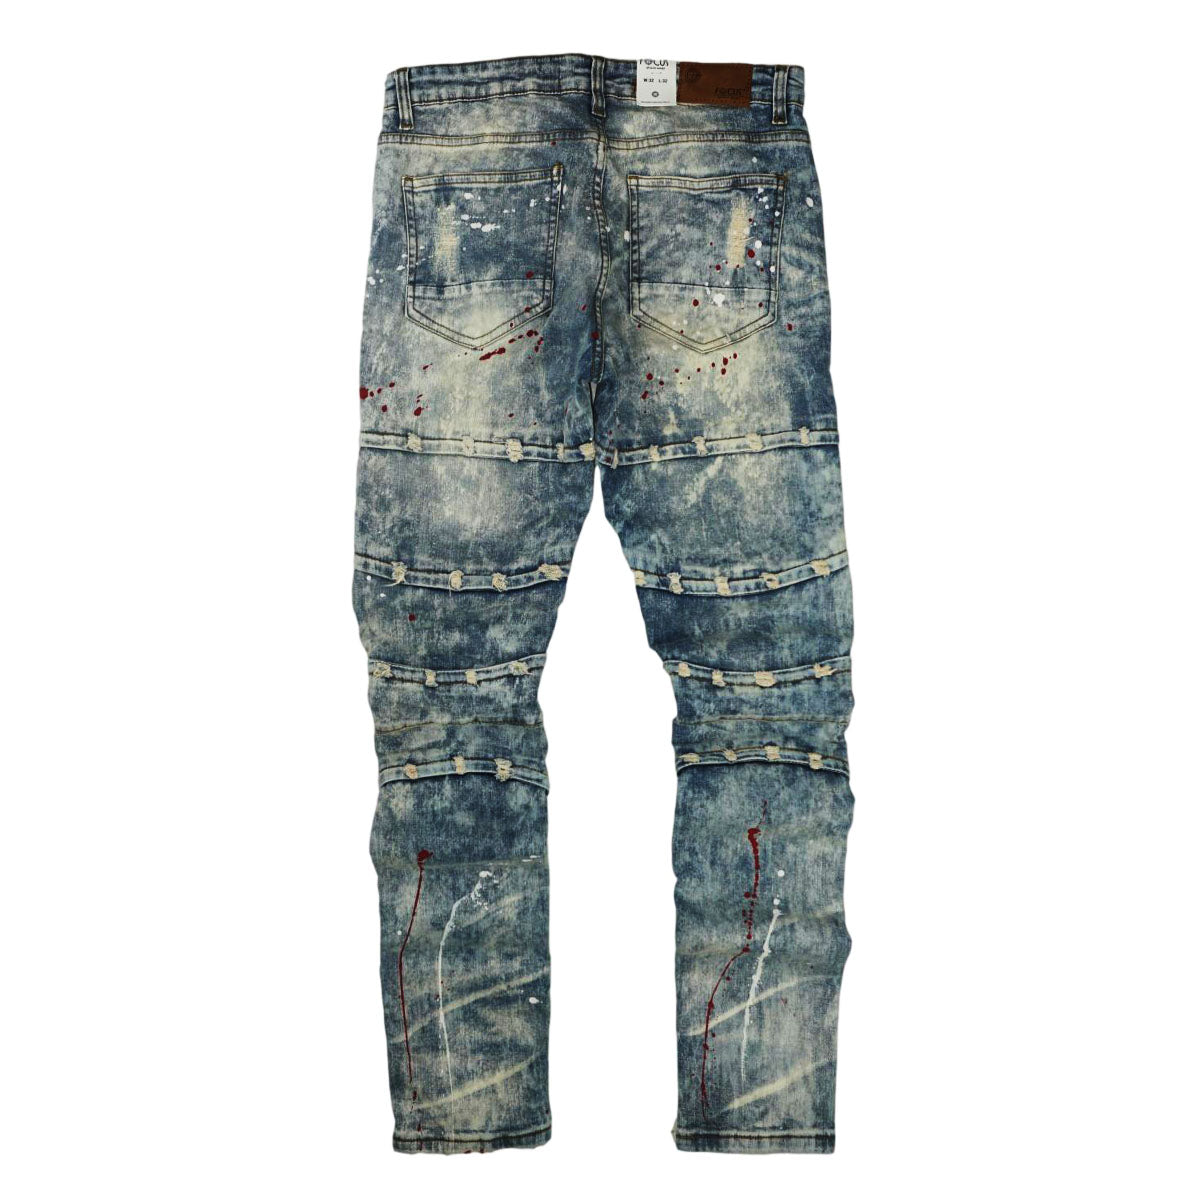 Heartbreak Distressed Biker Denim (Vintage Md. Blue) / C8